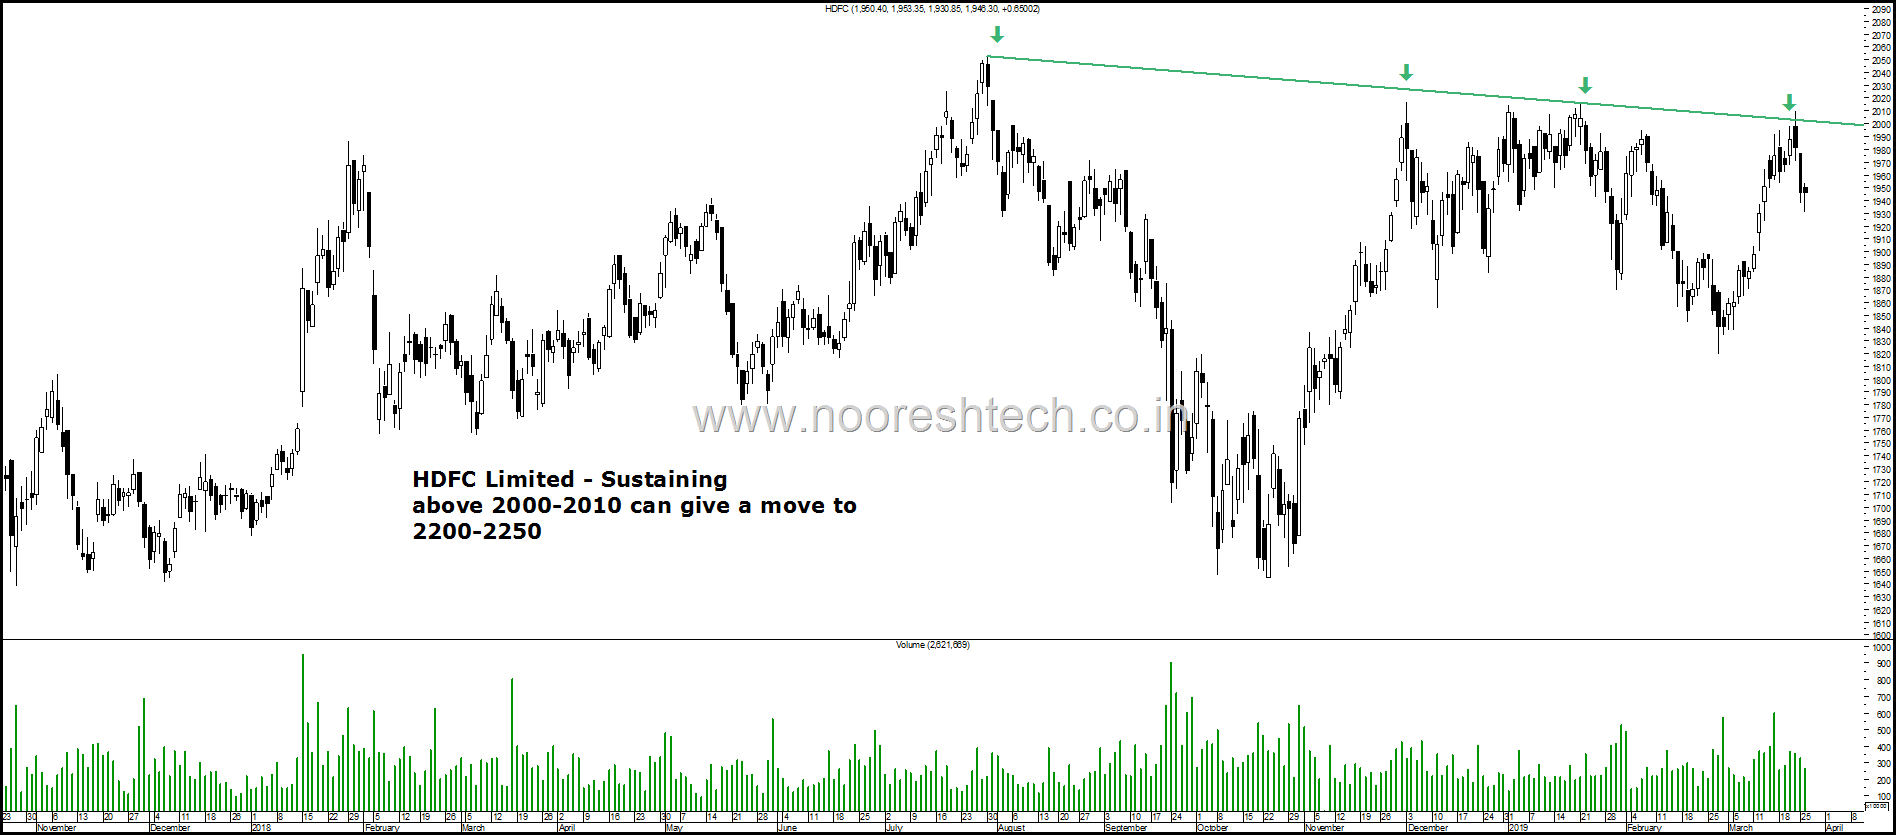 HDFC Limited 2010